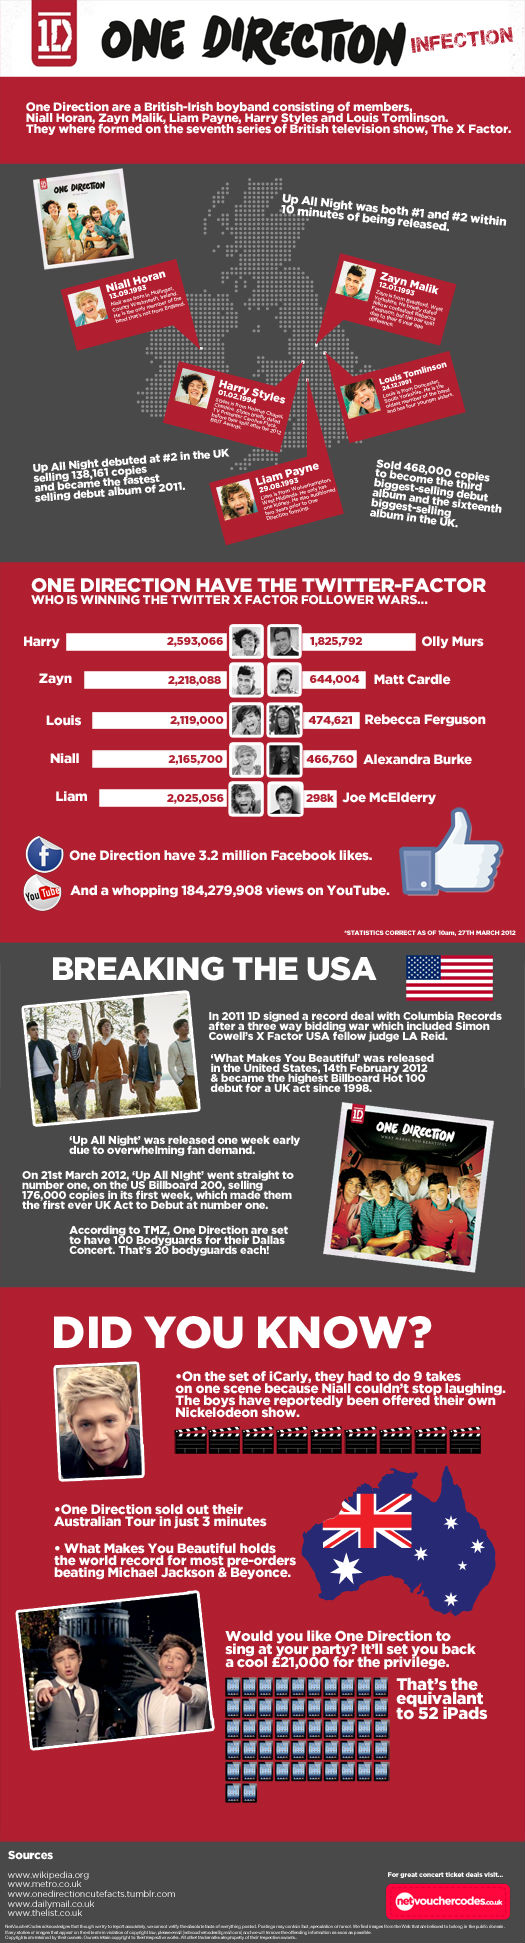 One Direction Infection (Infographic)